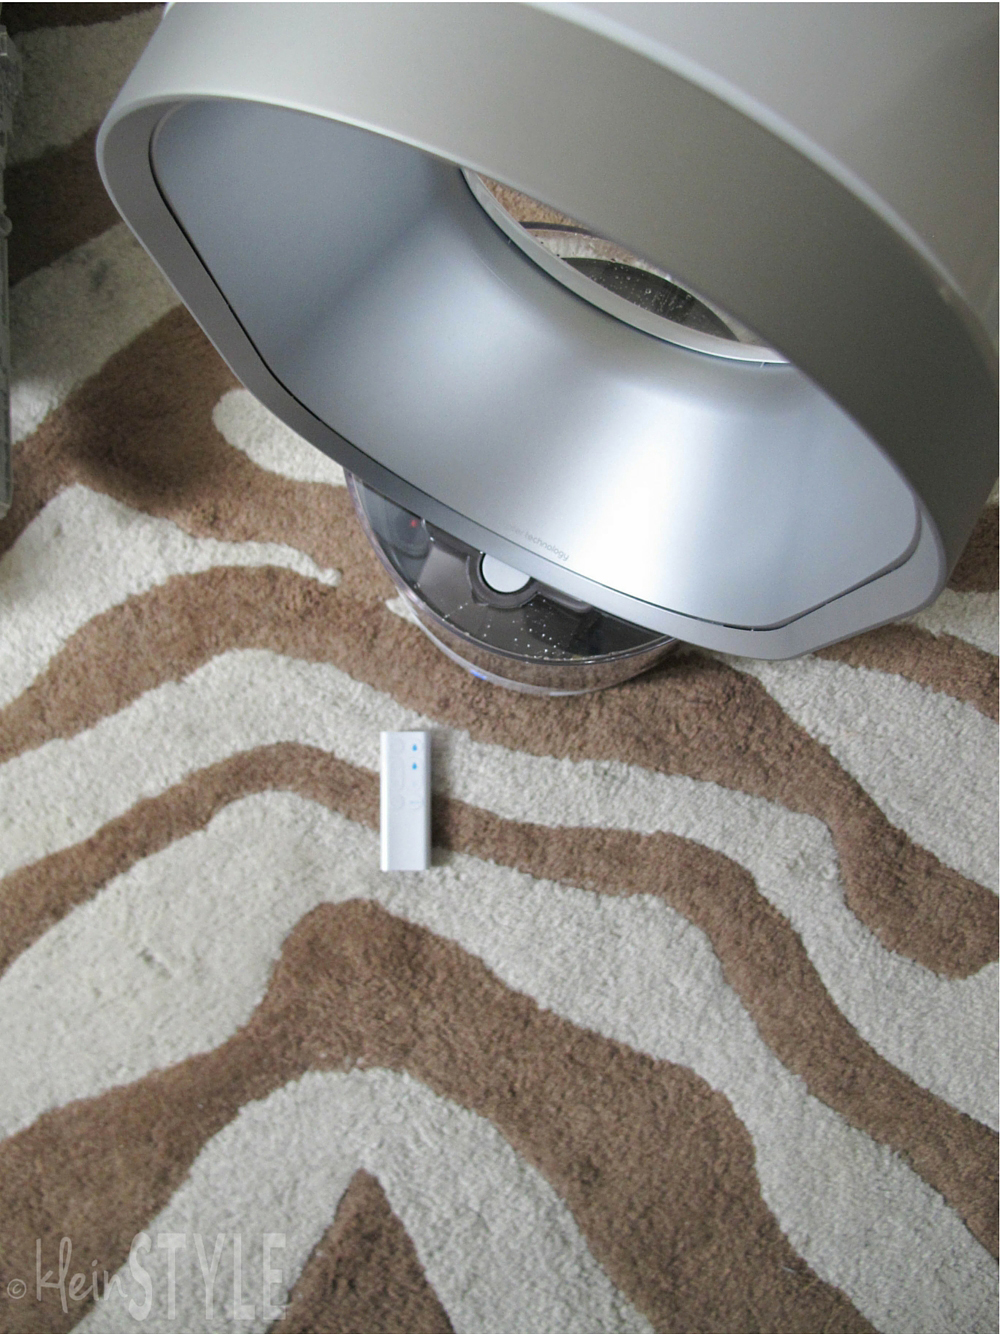 dyson humidifier im test 4 by kleinstyle